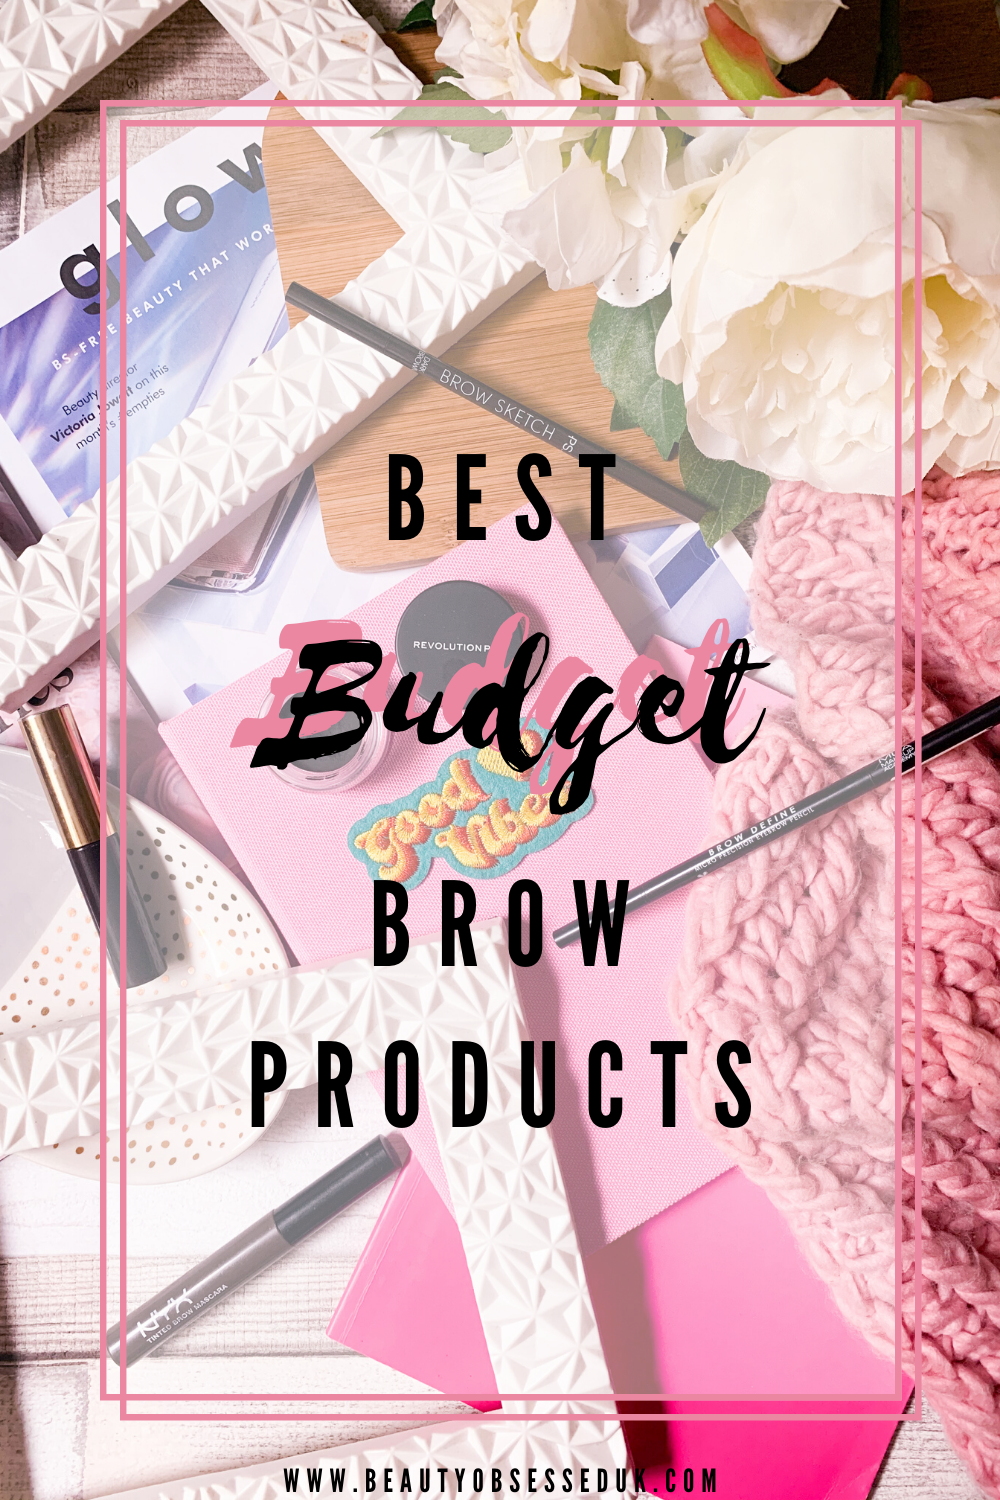 Best Budget Brow Product Pinterest